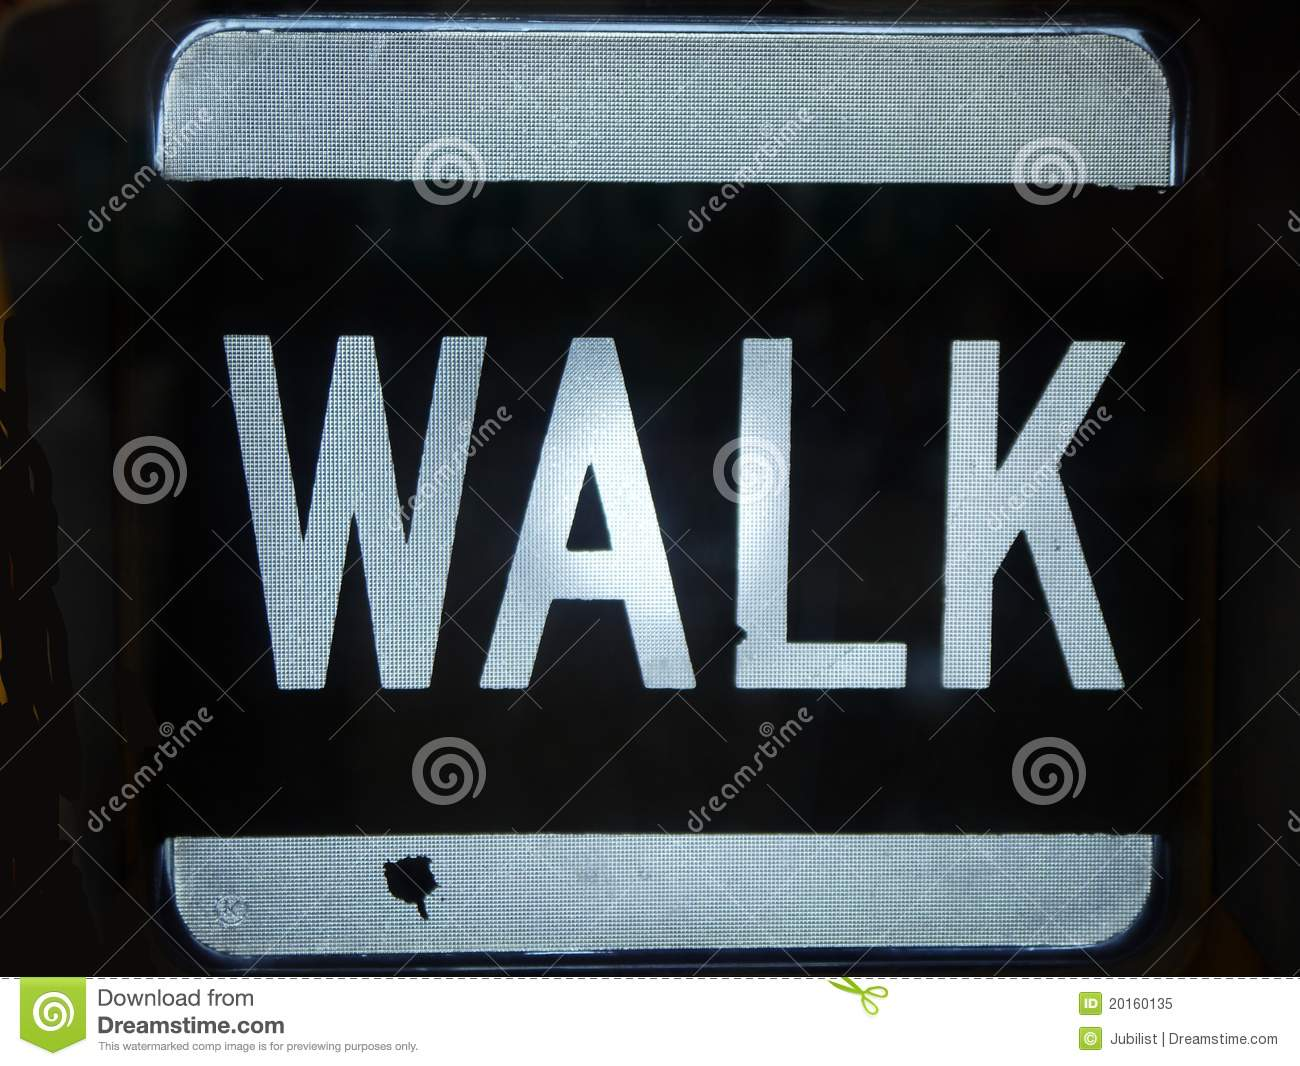 City Walk Sign Royalty Free Stock Photo  Image 20160135. Mickey Mouse Murals. Public Place Signs Of Stroke. Lime Green Banners. Ios Logo. Travel Site Banners. Rose Banners. Diagnosis Signs Of Stroke. Beauty And The Beast Signs Of Stroke